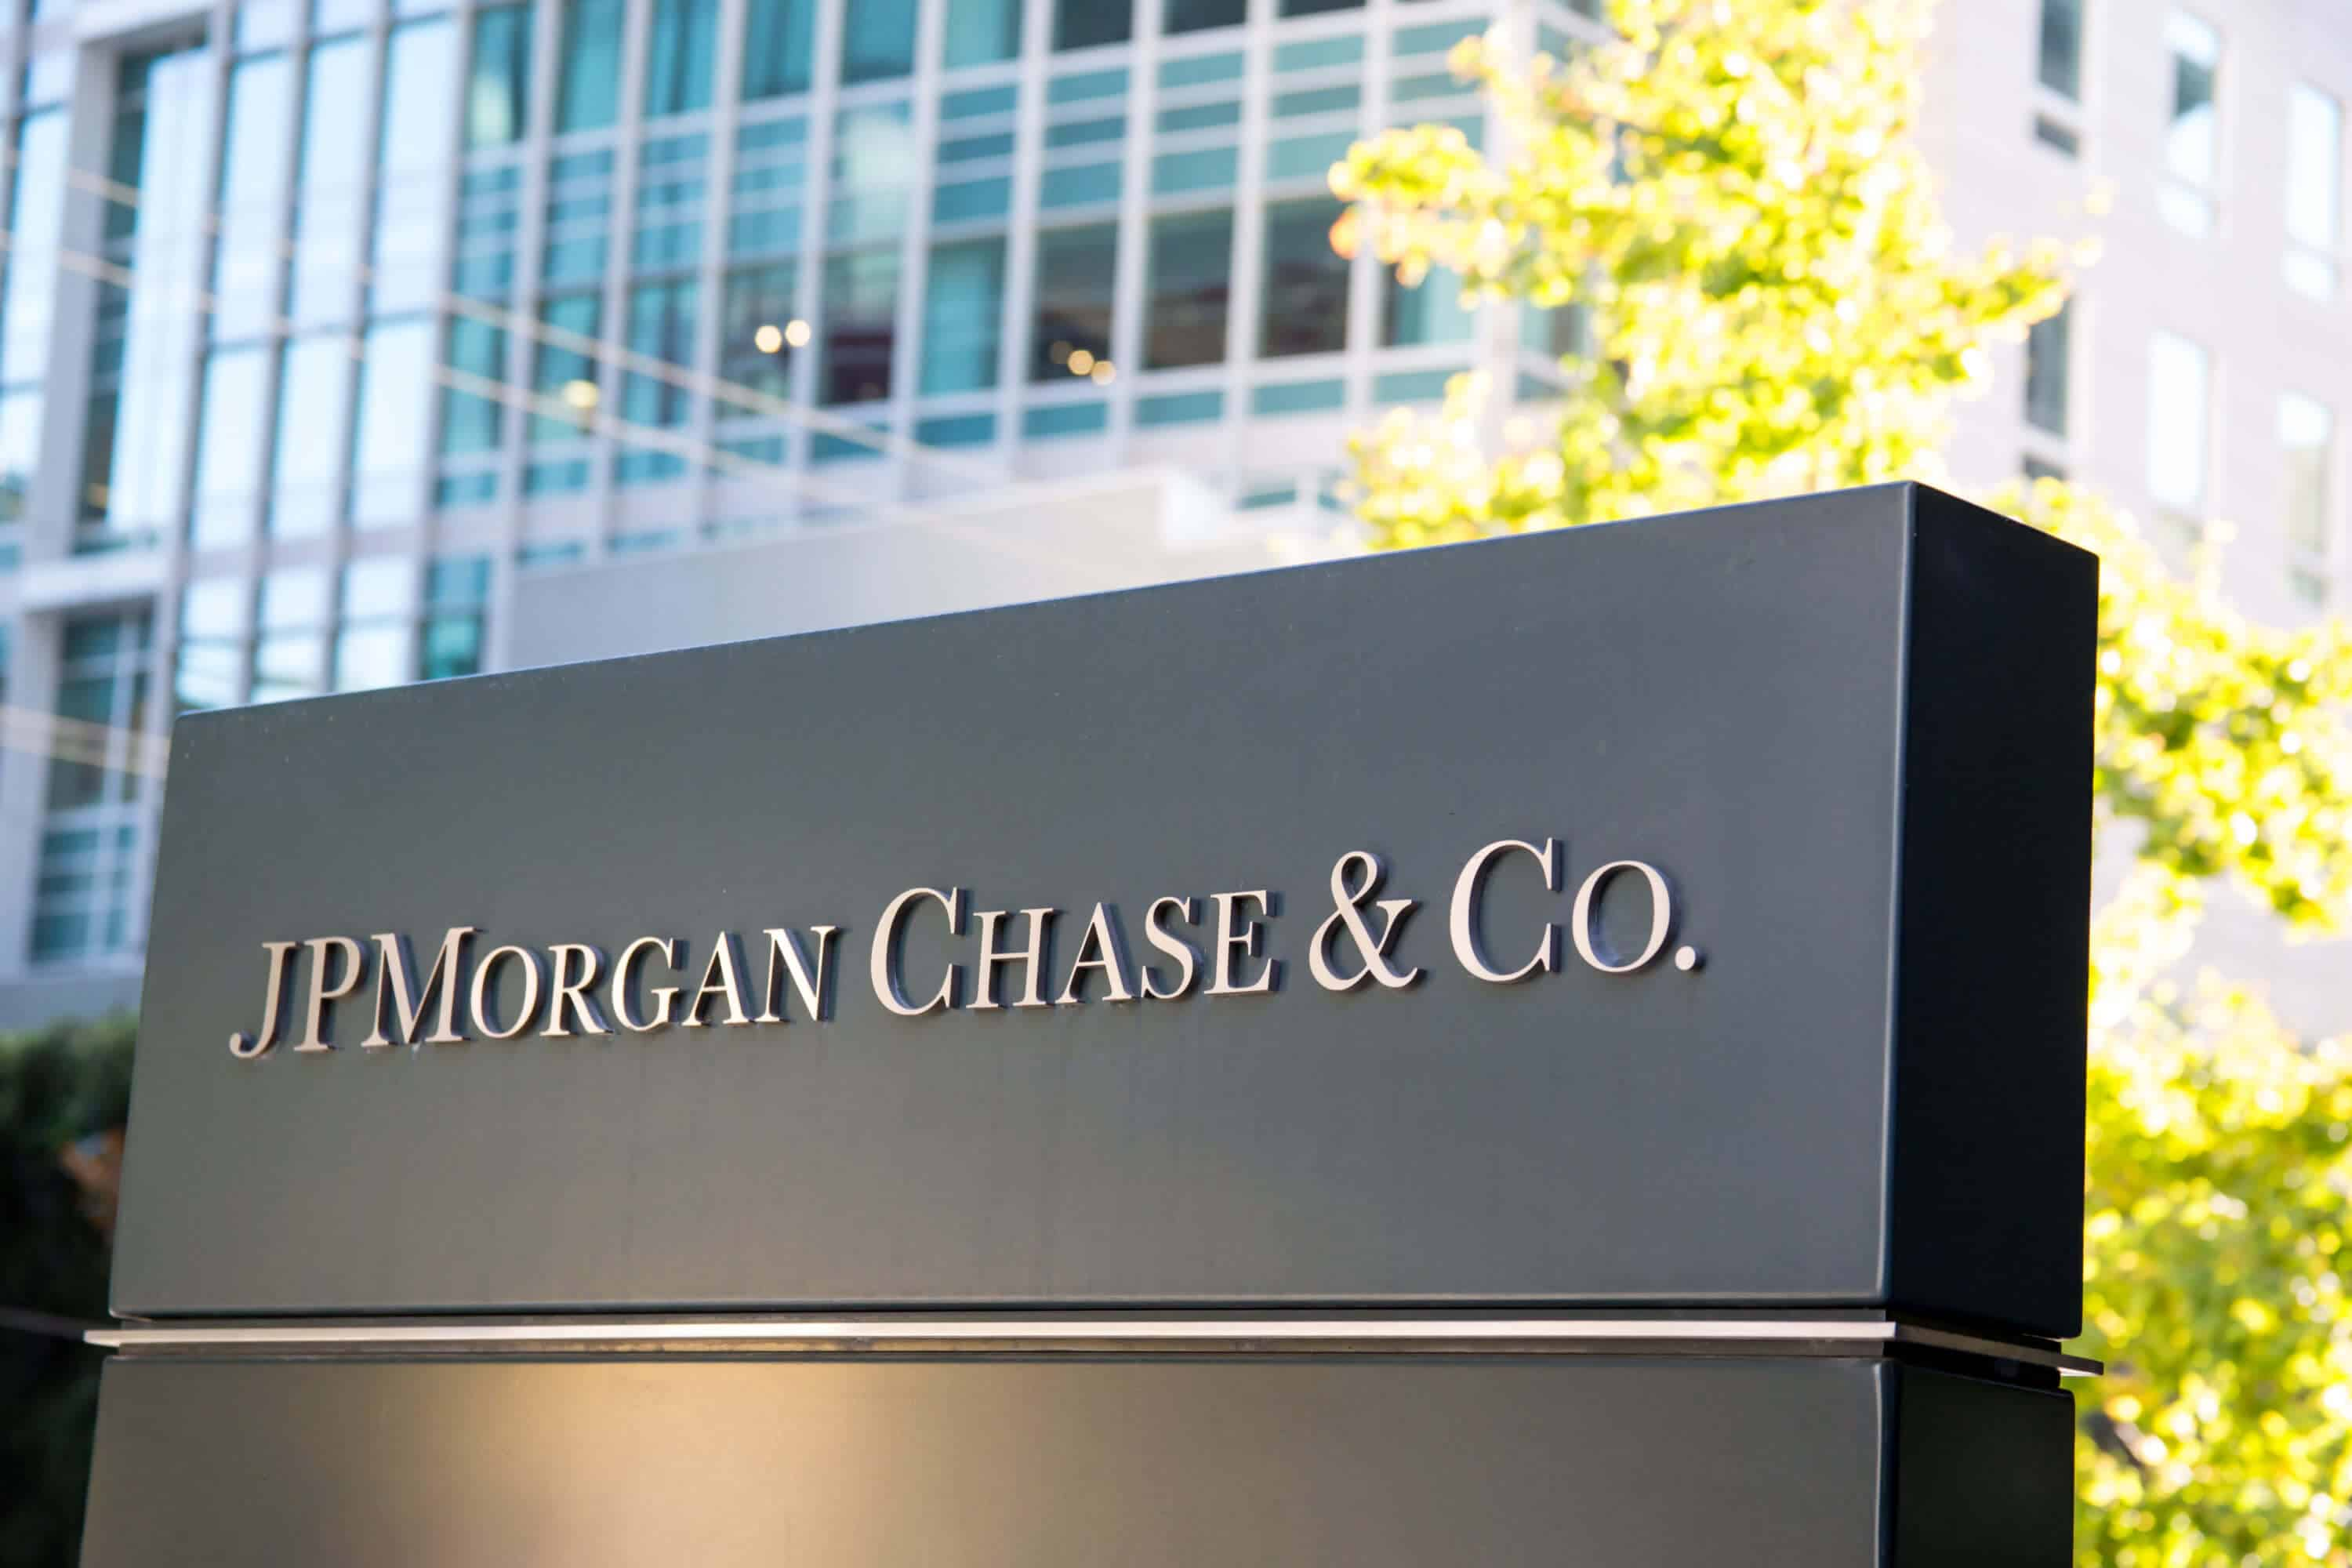 Launch of JPMorgan Chase's digital coin – JPM, a turning